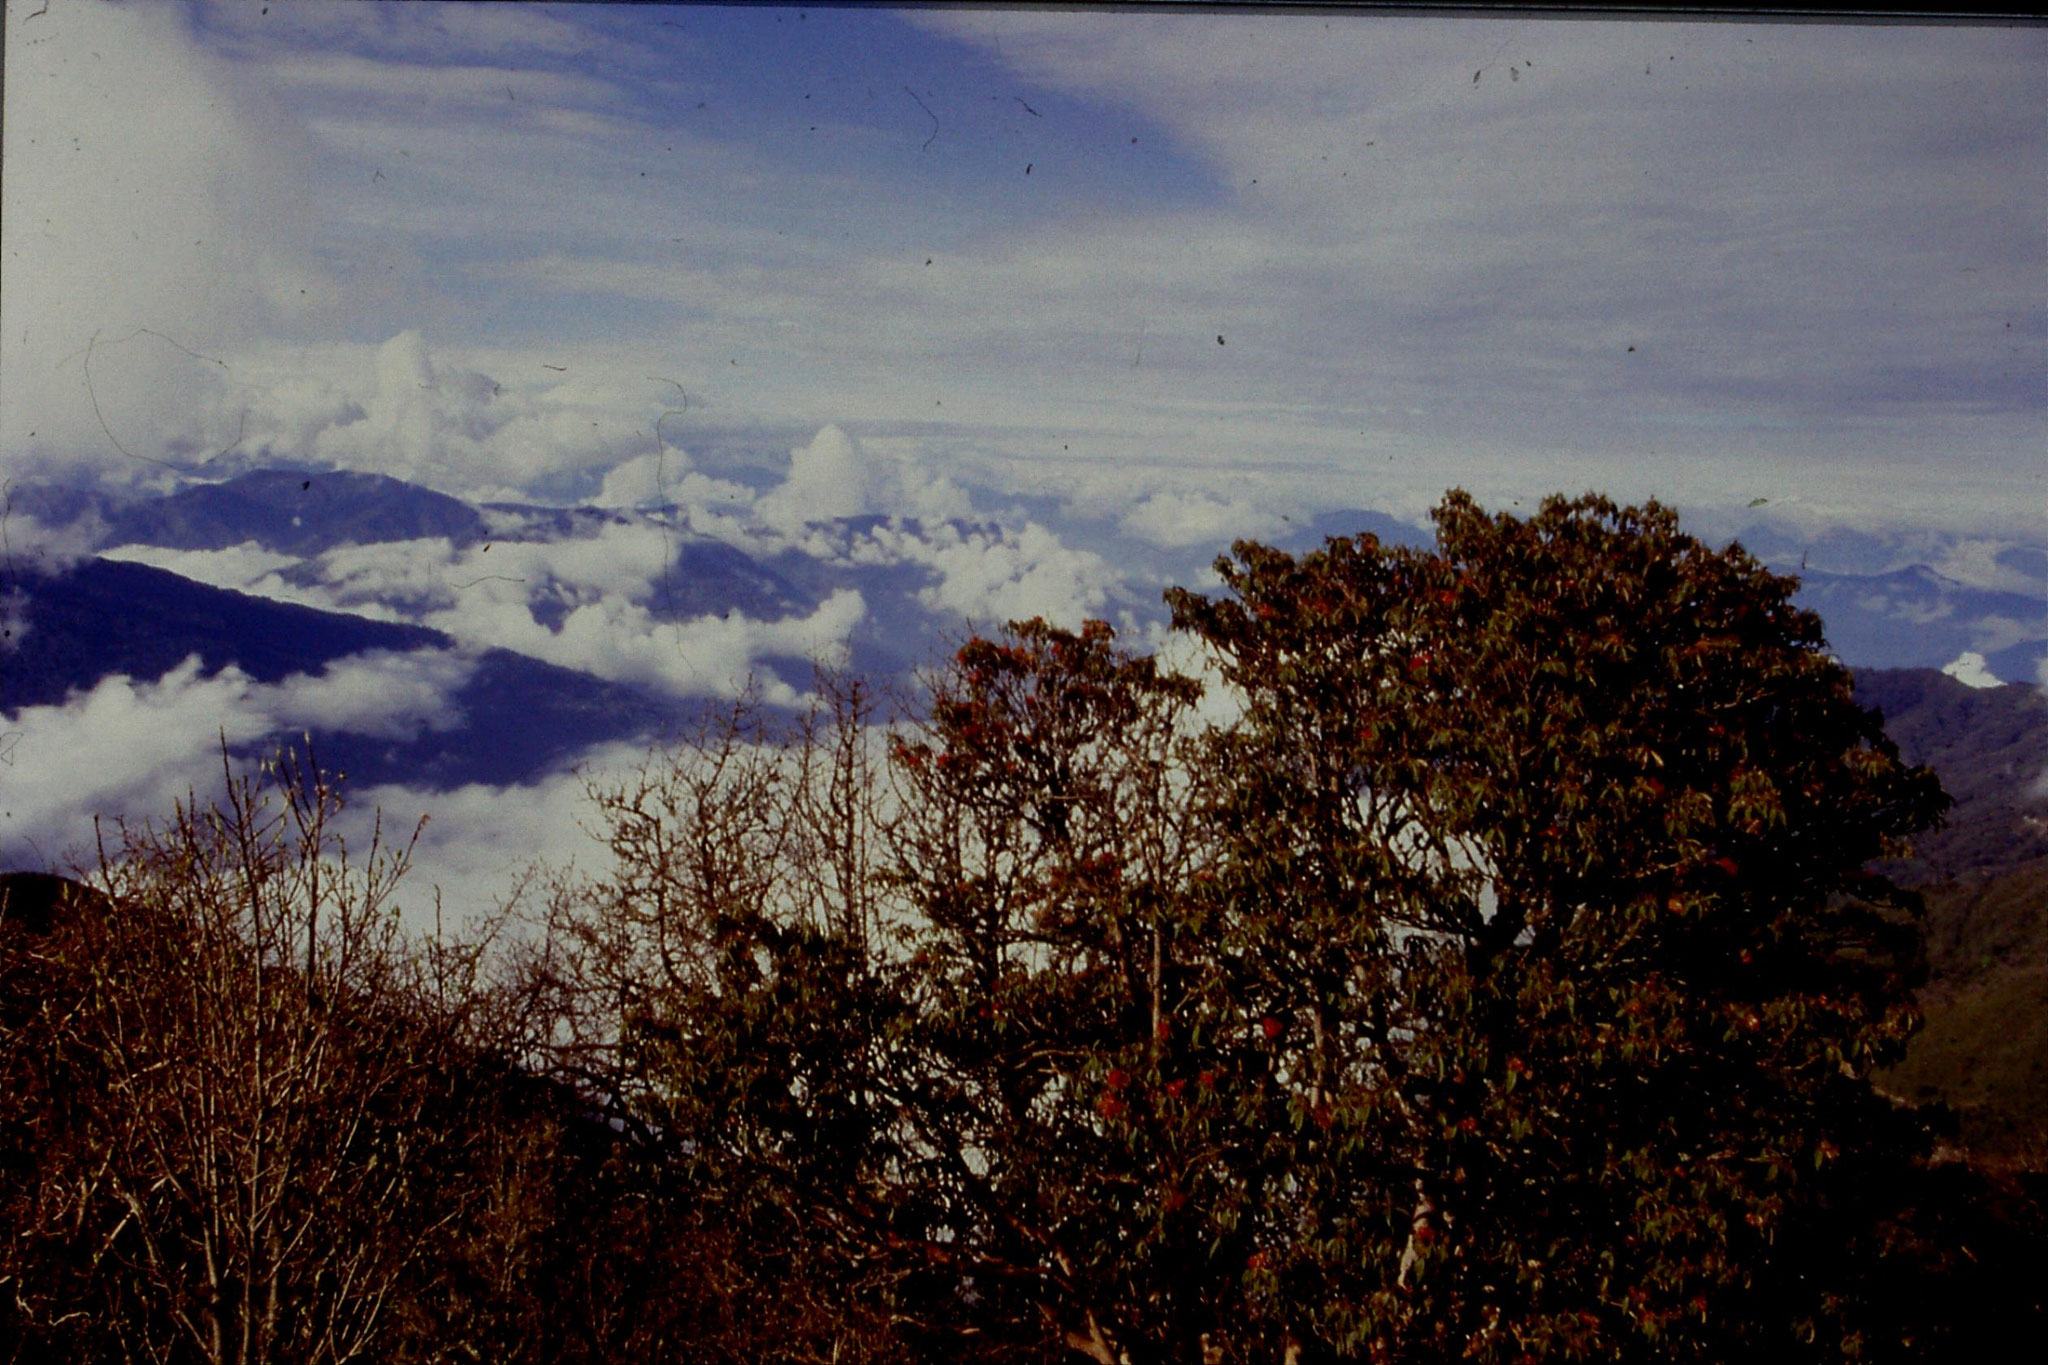 4/5/1990: 5: near Tonglu, view towards Kanchenjunga